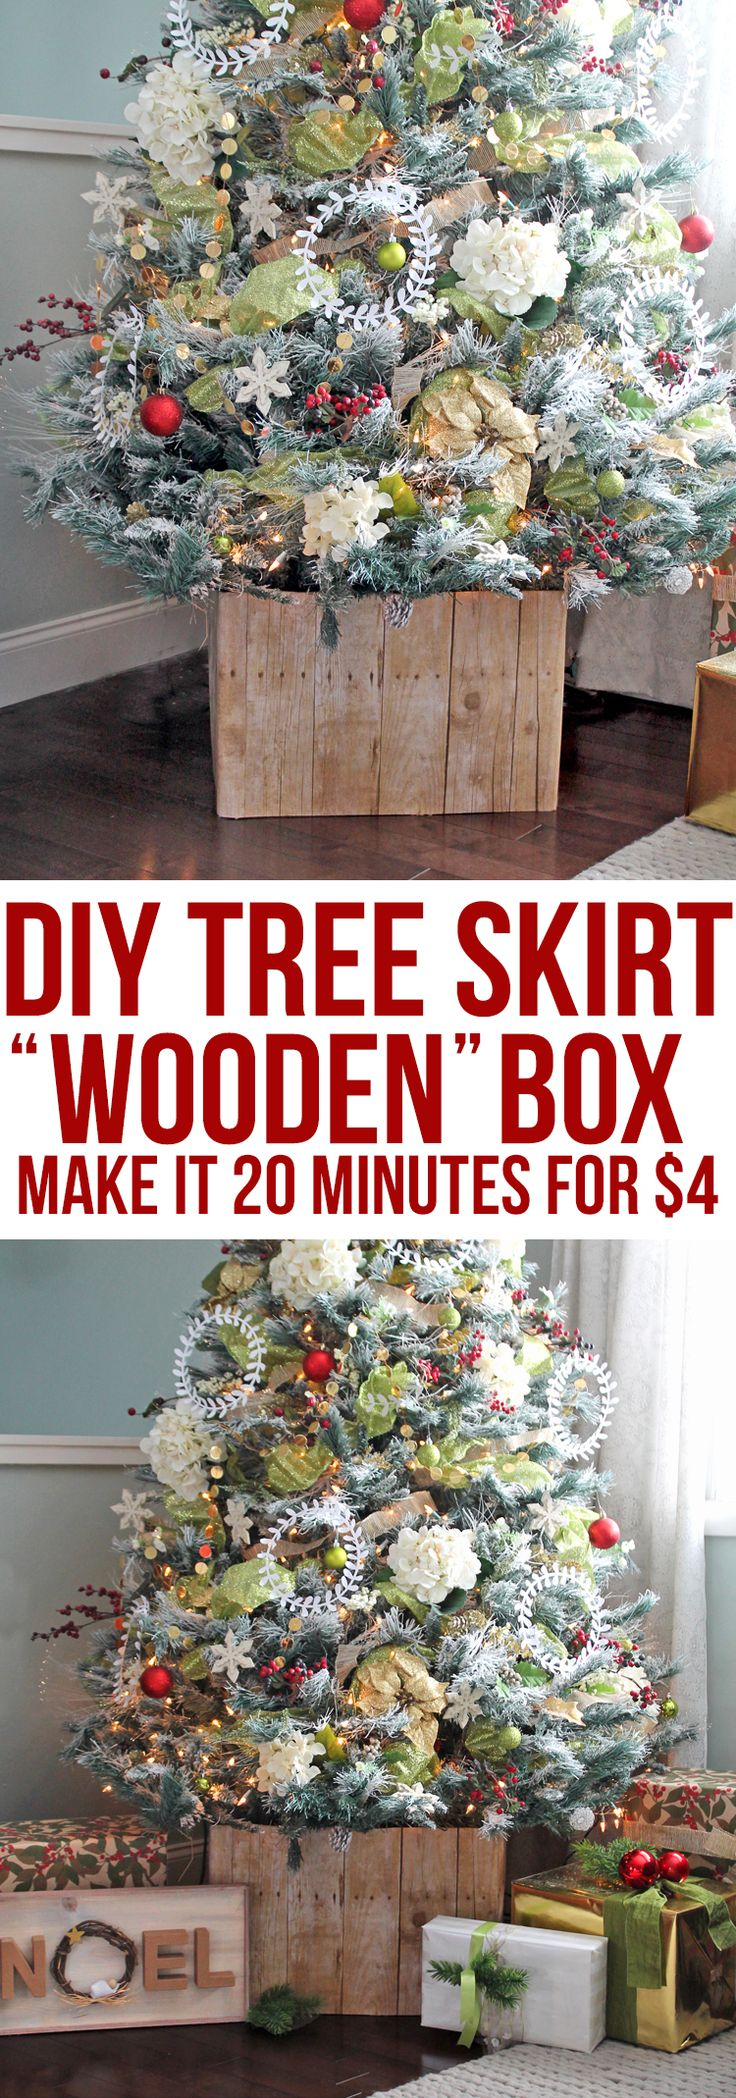 Make this rustic barnwood style Christmas tree collar with no special tools. It's not made of wood! Super easy to do and only cost about $4. #ChristmasTree #treeskirt #christmastreedecor #christmas